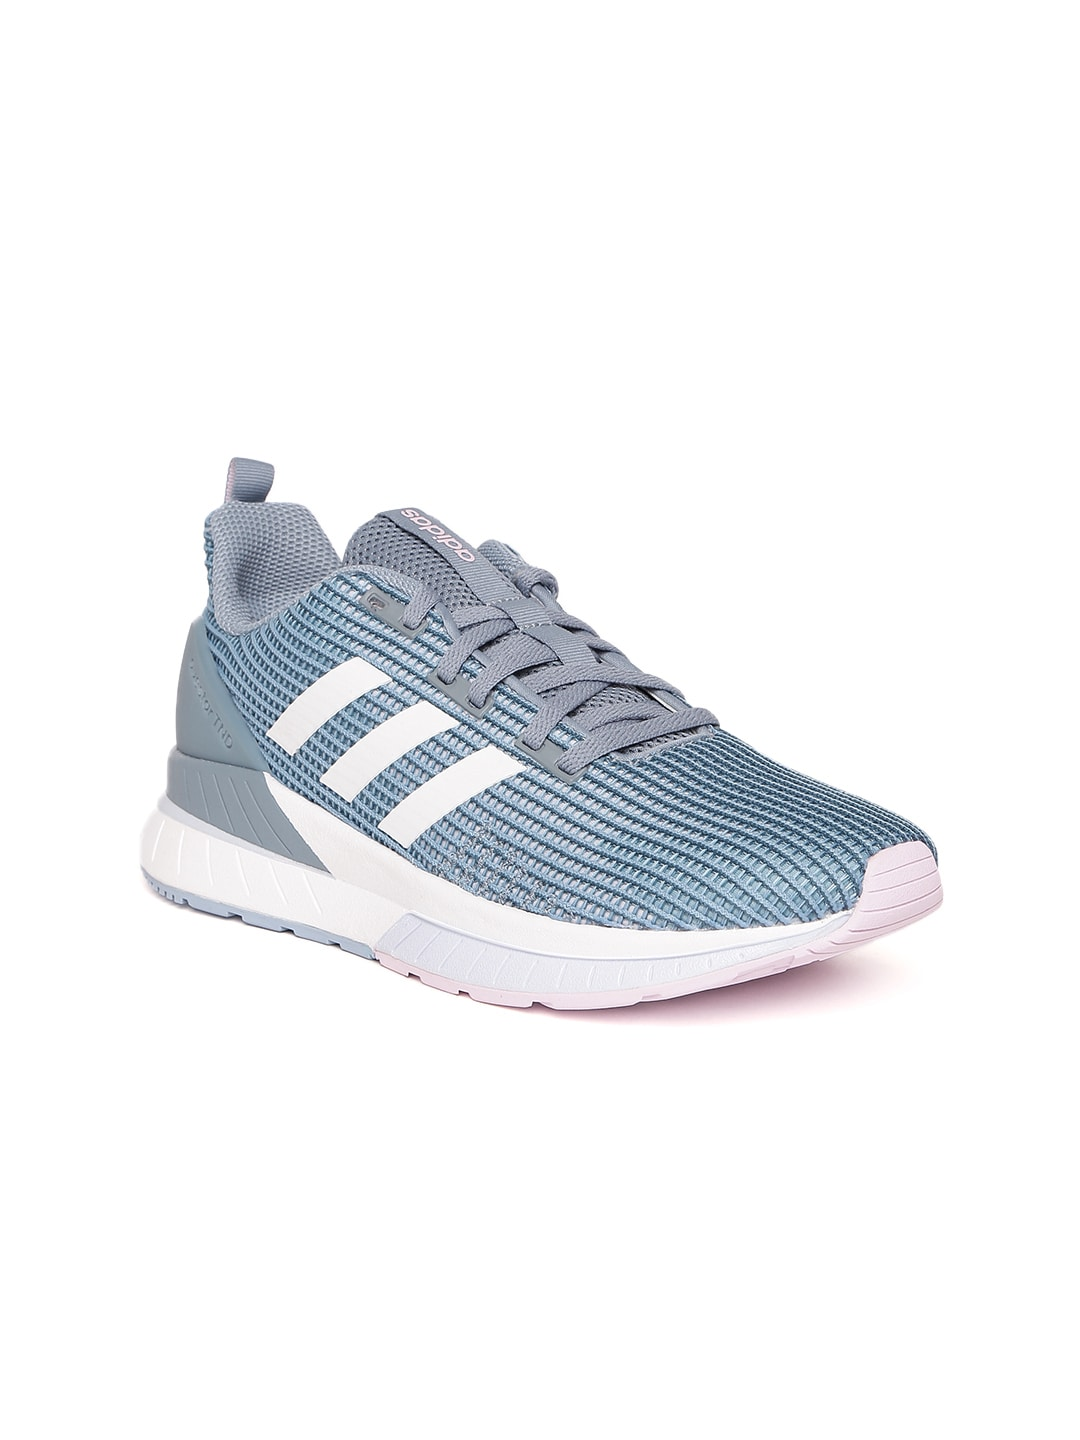 Adidas Track Pants Trousers Sweatshirts Sports Shoes - Buy Adidas Track  Pants Trousers Sweatshirts Sports Shoes online in India